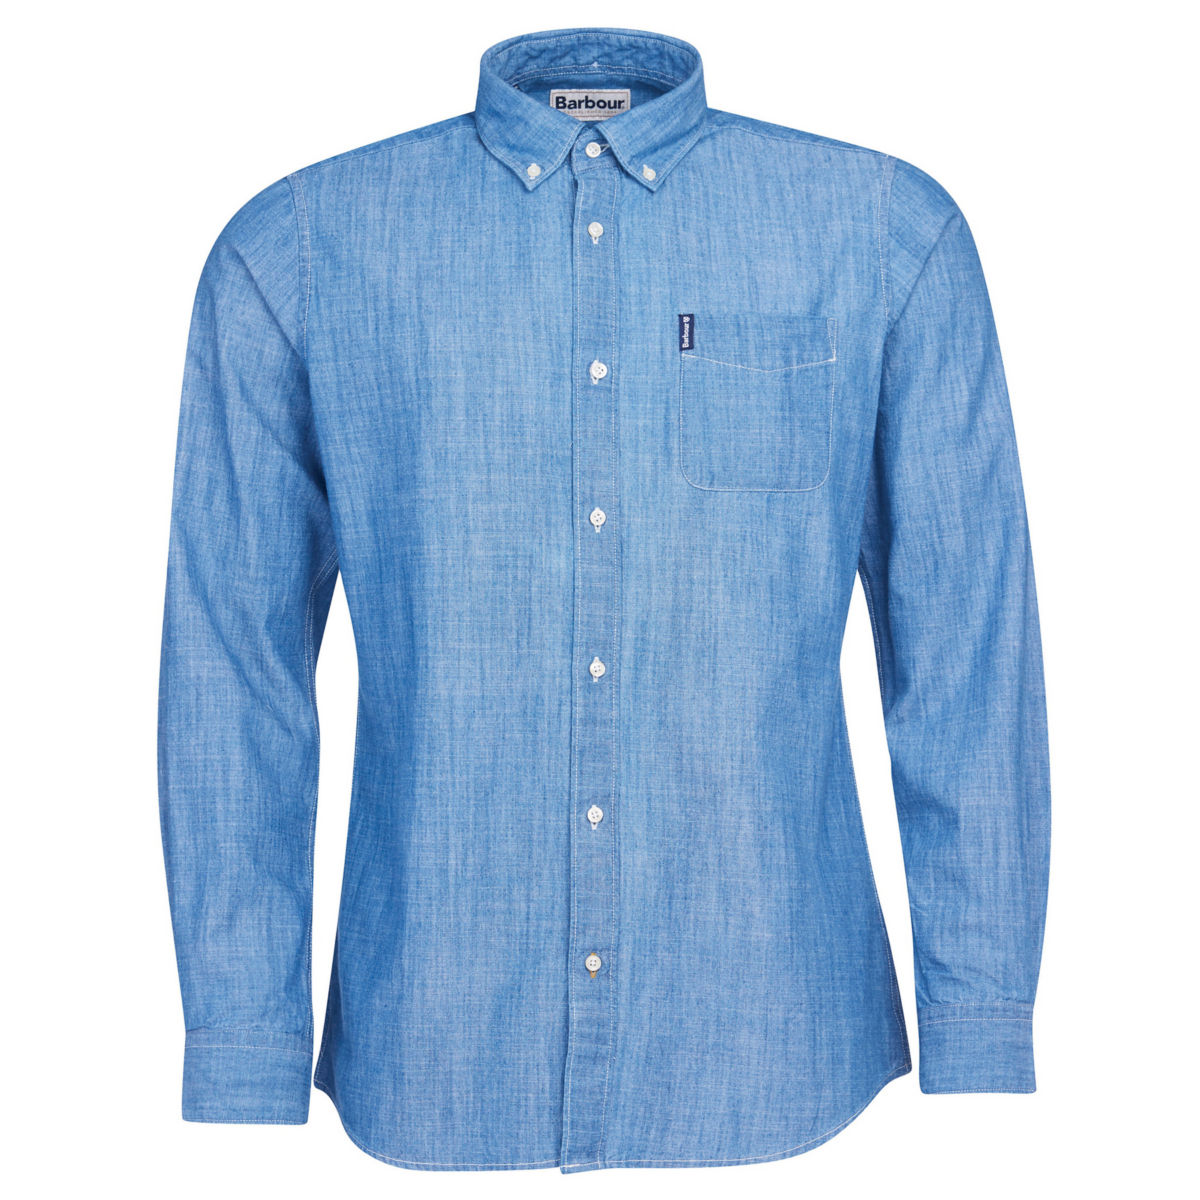 Barbour® Chambray 1 Tailored Shirt - CHAMBRAYimage number 0